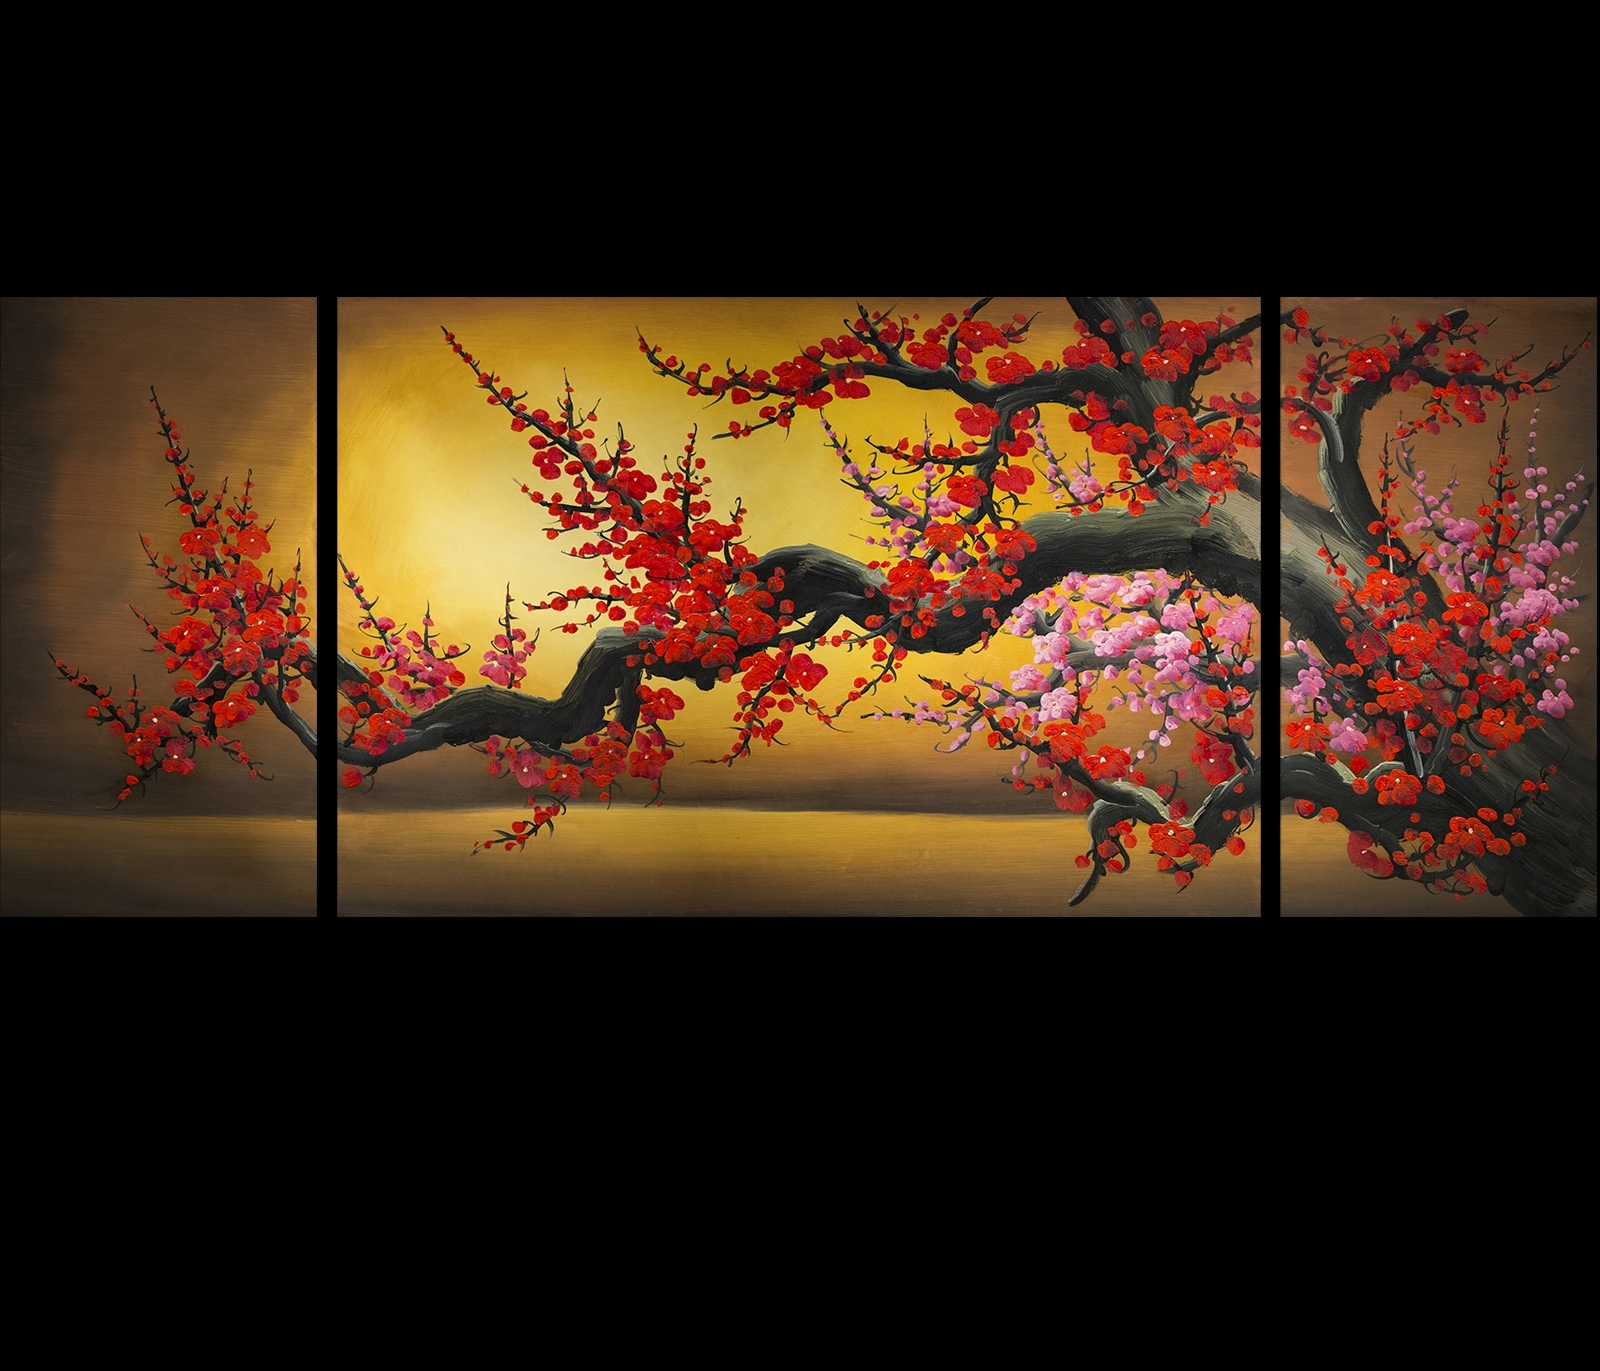 Chinese Cherry Blossom Painting Original Modern Abstract Art With Regard To Most Recently Released Abstract Cherry Blossom Wall Art (Gallery 6 of 20)